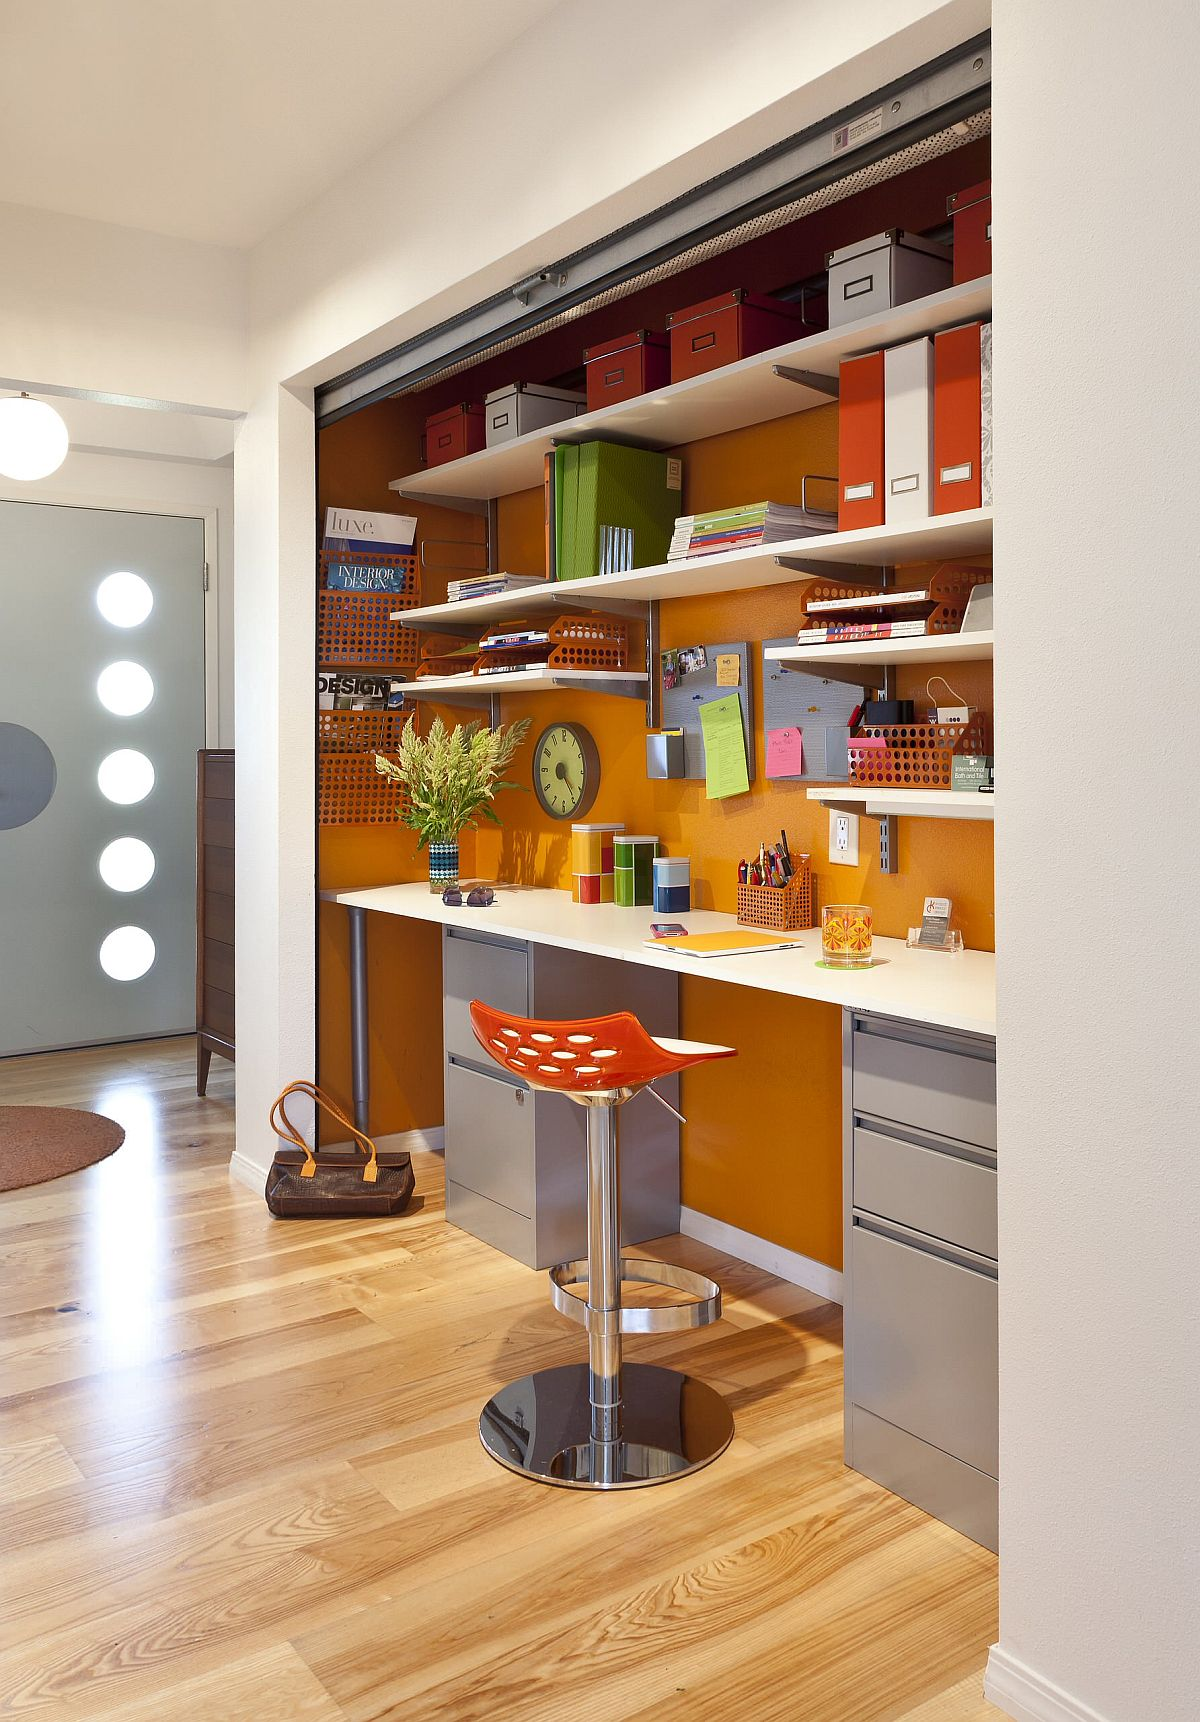 Exquisite orange home office feels refreshing and contemporary with a touch of quirkiness